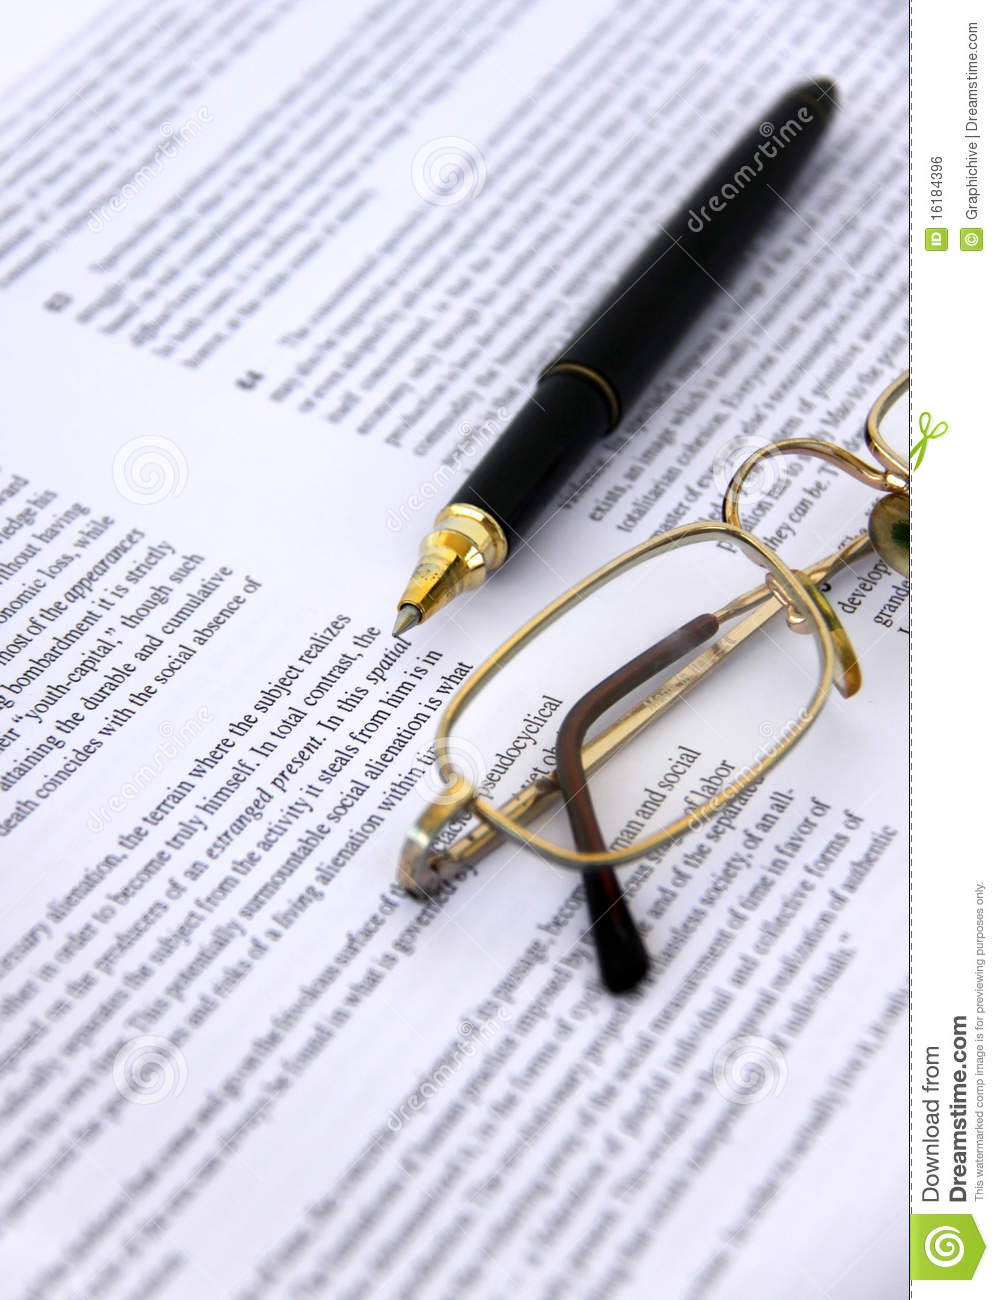 Pen and Eyeglasses on a document closeup